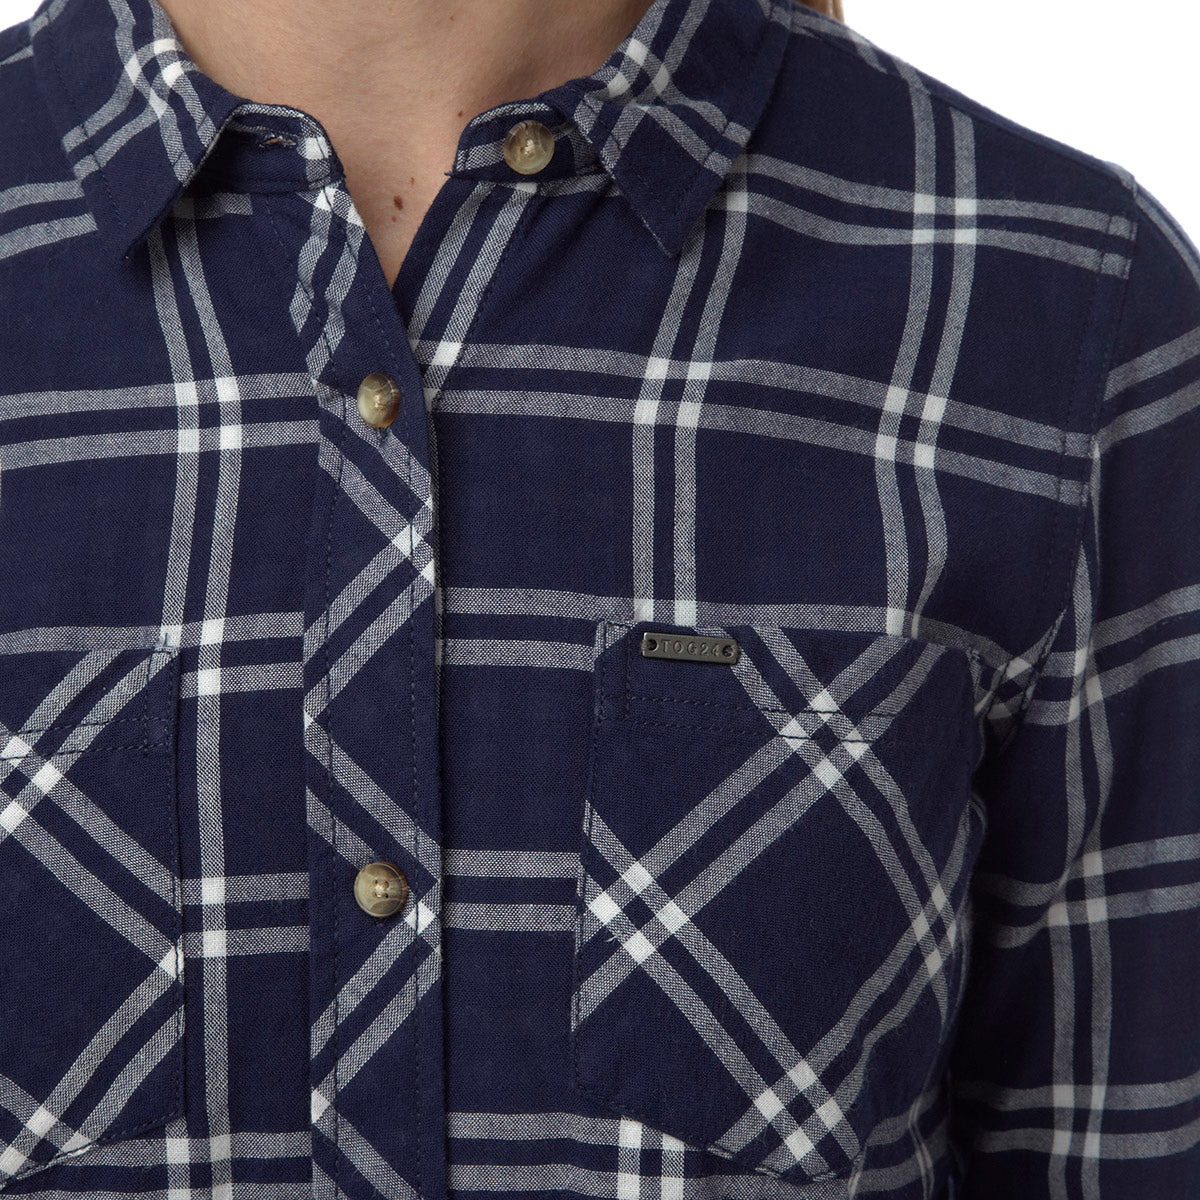 Dalton Womens Double Weave Shirt - Navy Check image 4